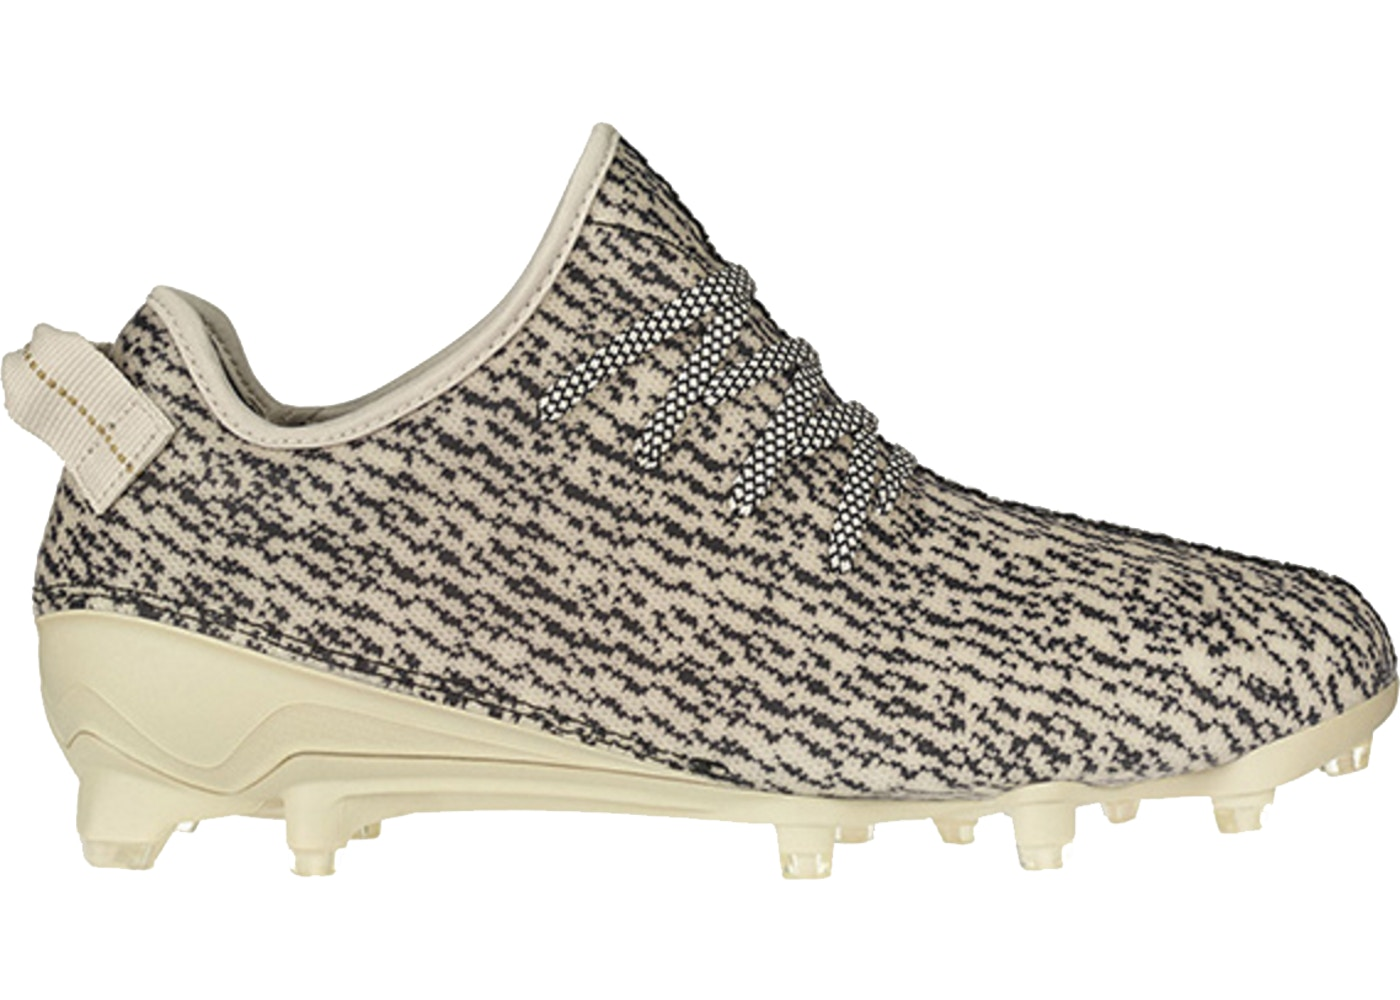 0c82119b1a8b2 adidas Yeezy 350 Cleat Turtledove - B42410